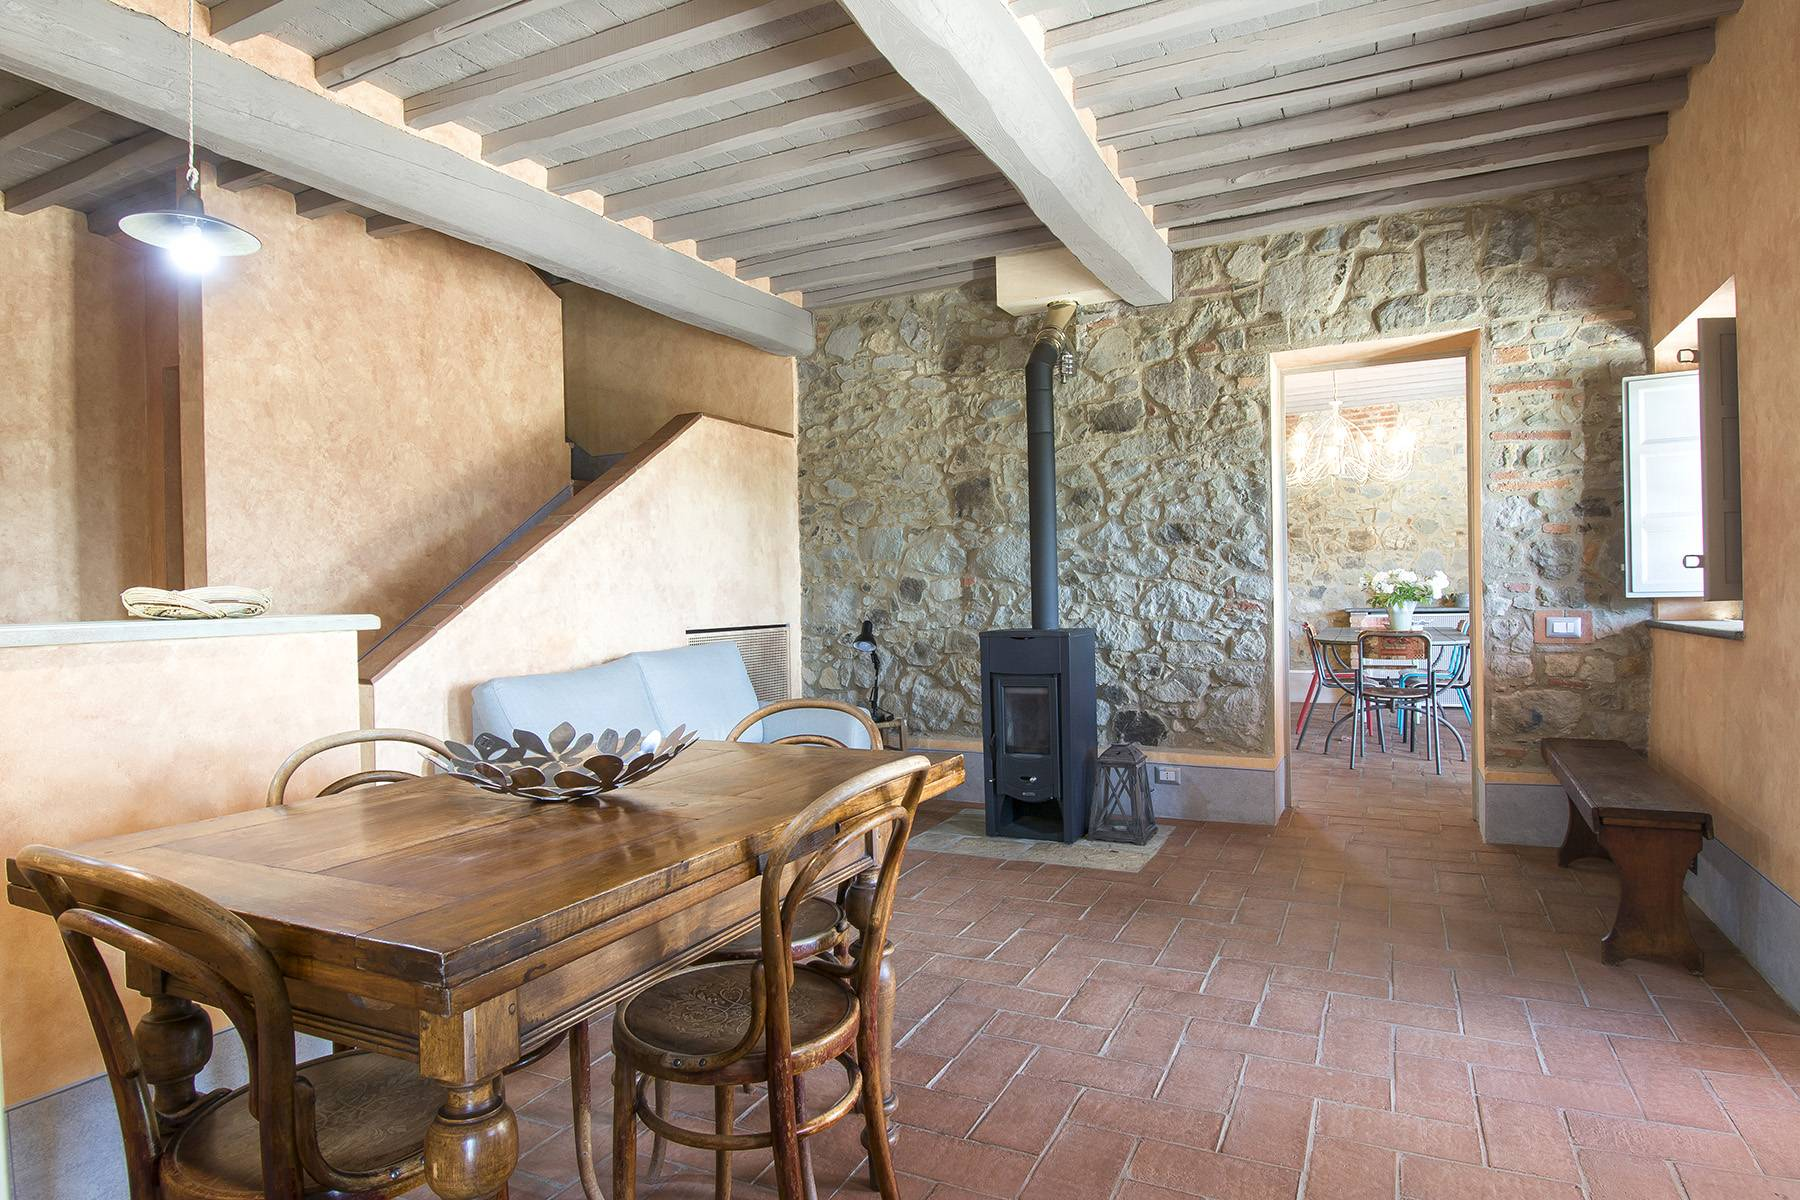 Stunning Country villa on the hills of Lucca with vineyard - 19